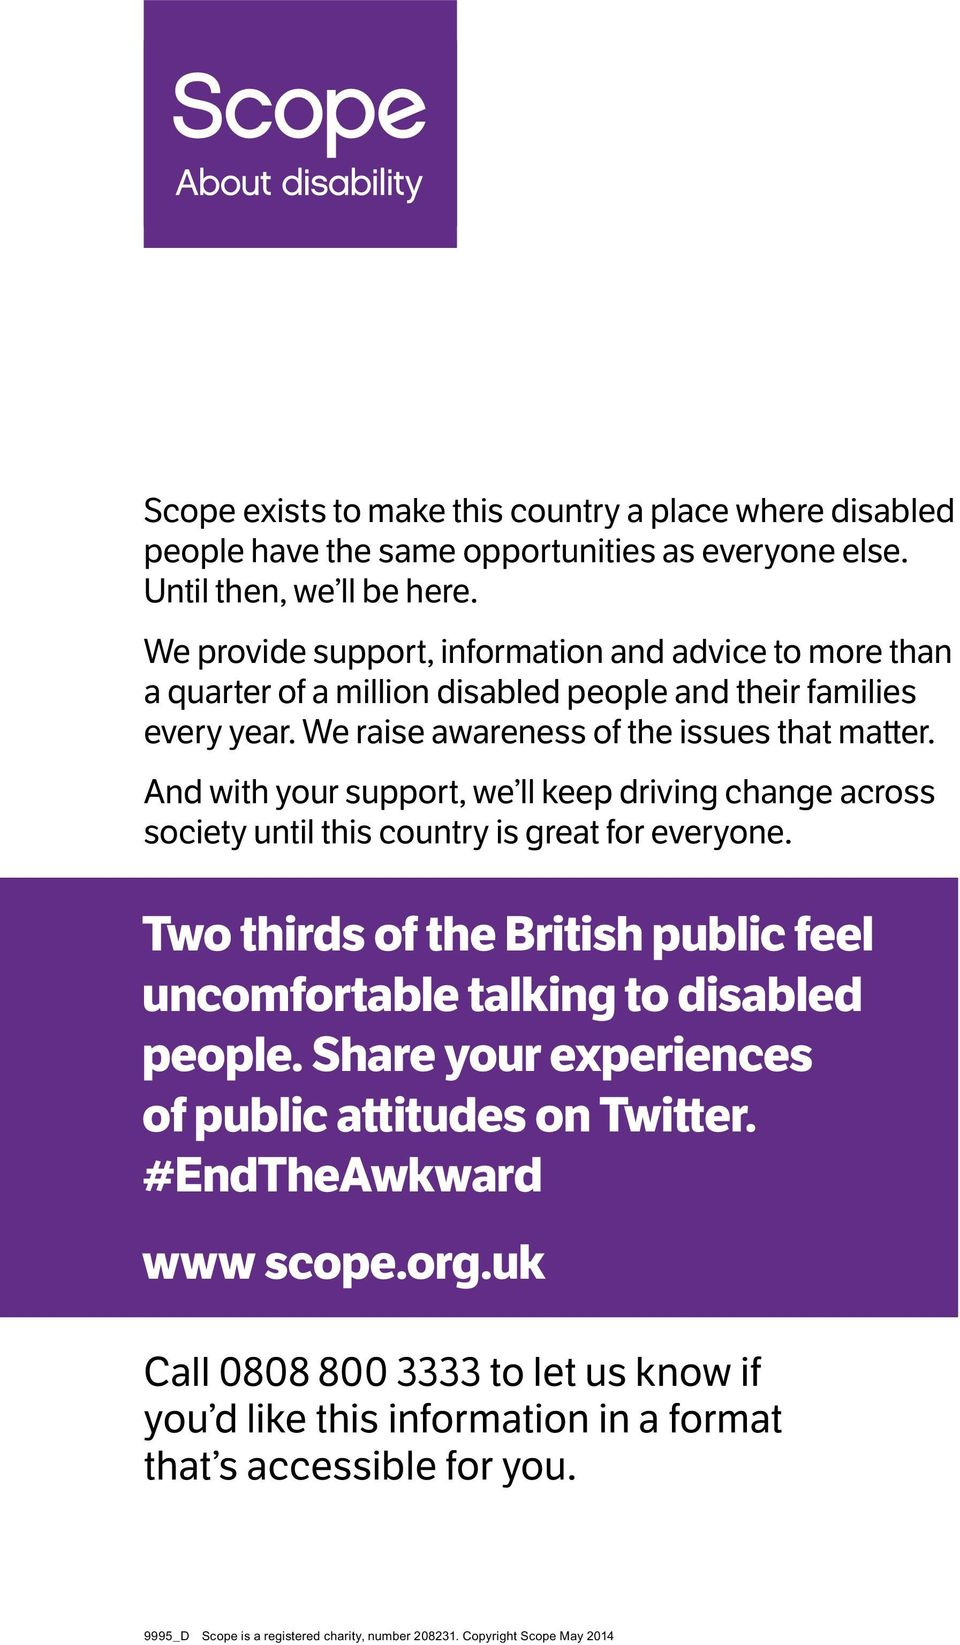 And with your support, we ll keep driving change across society until this country is great for everyone. Two thirds of the British public feel uncomfortable talking to disabled people.